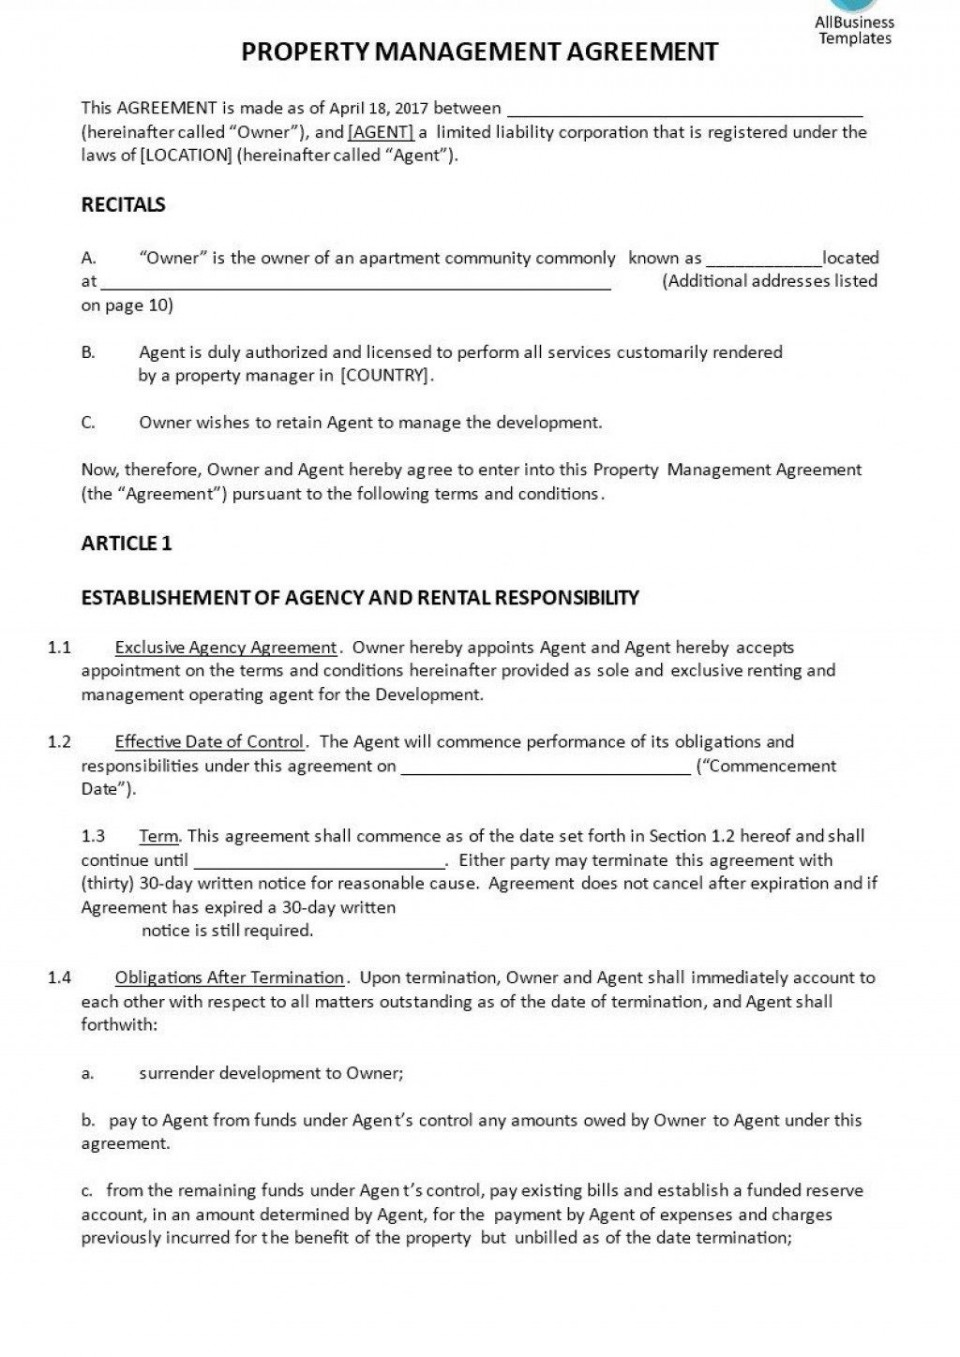 001 Stunning Property Management Contract Form High Definition  Agreement Template Ontario960